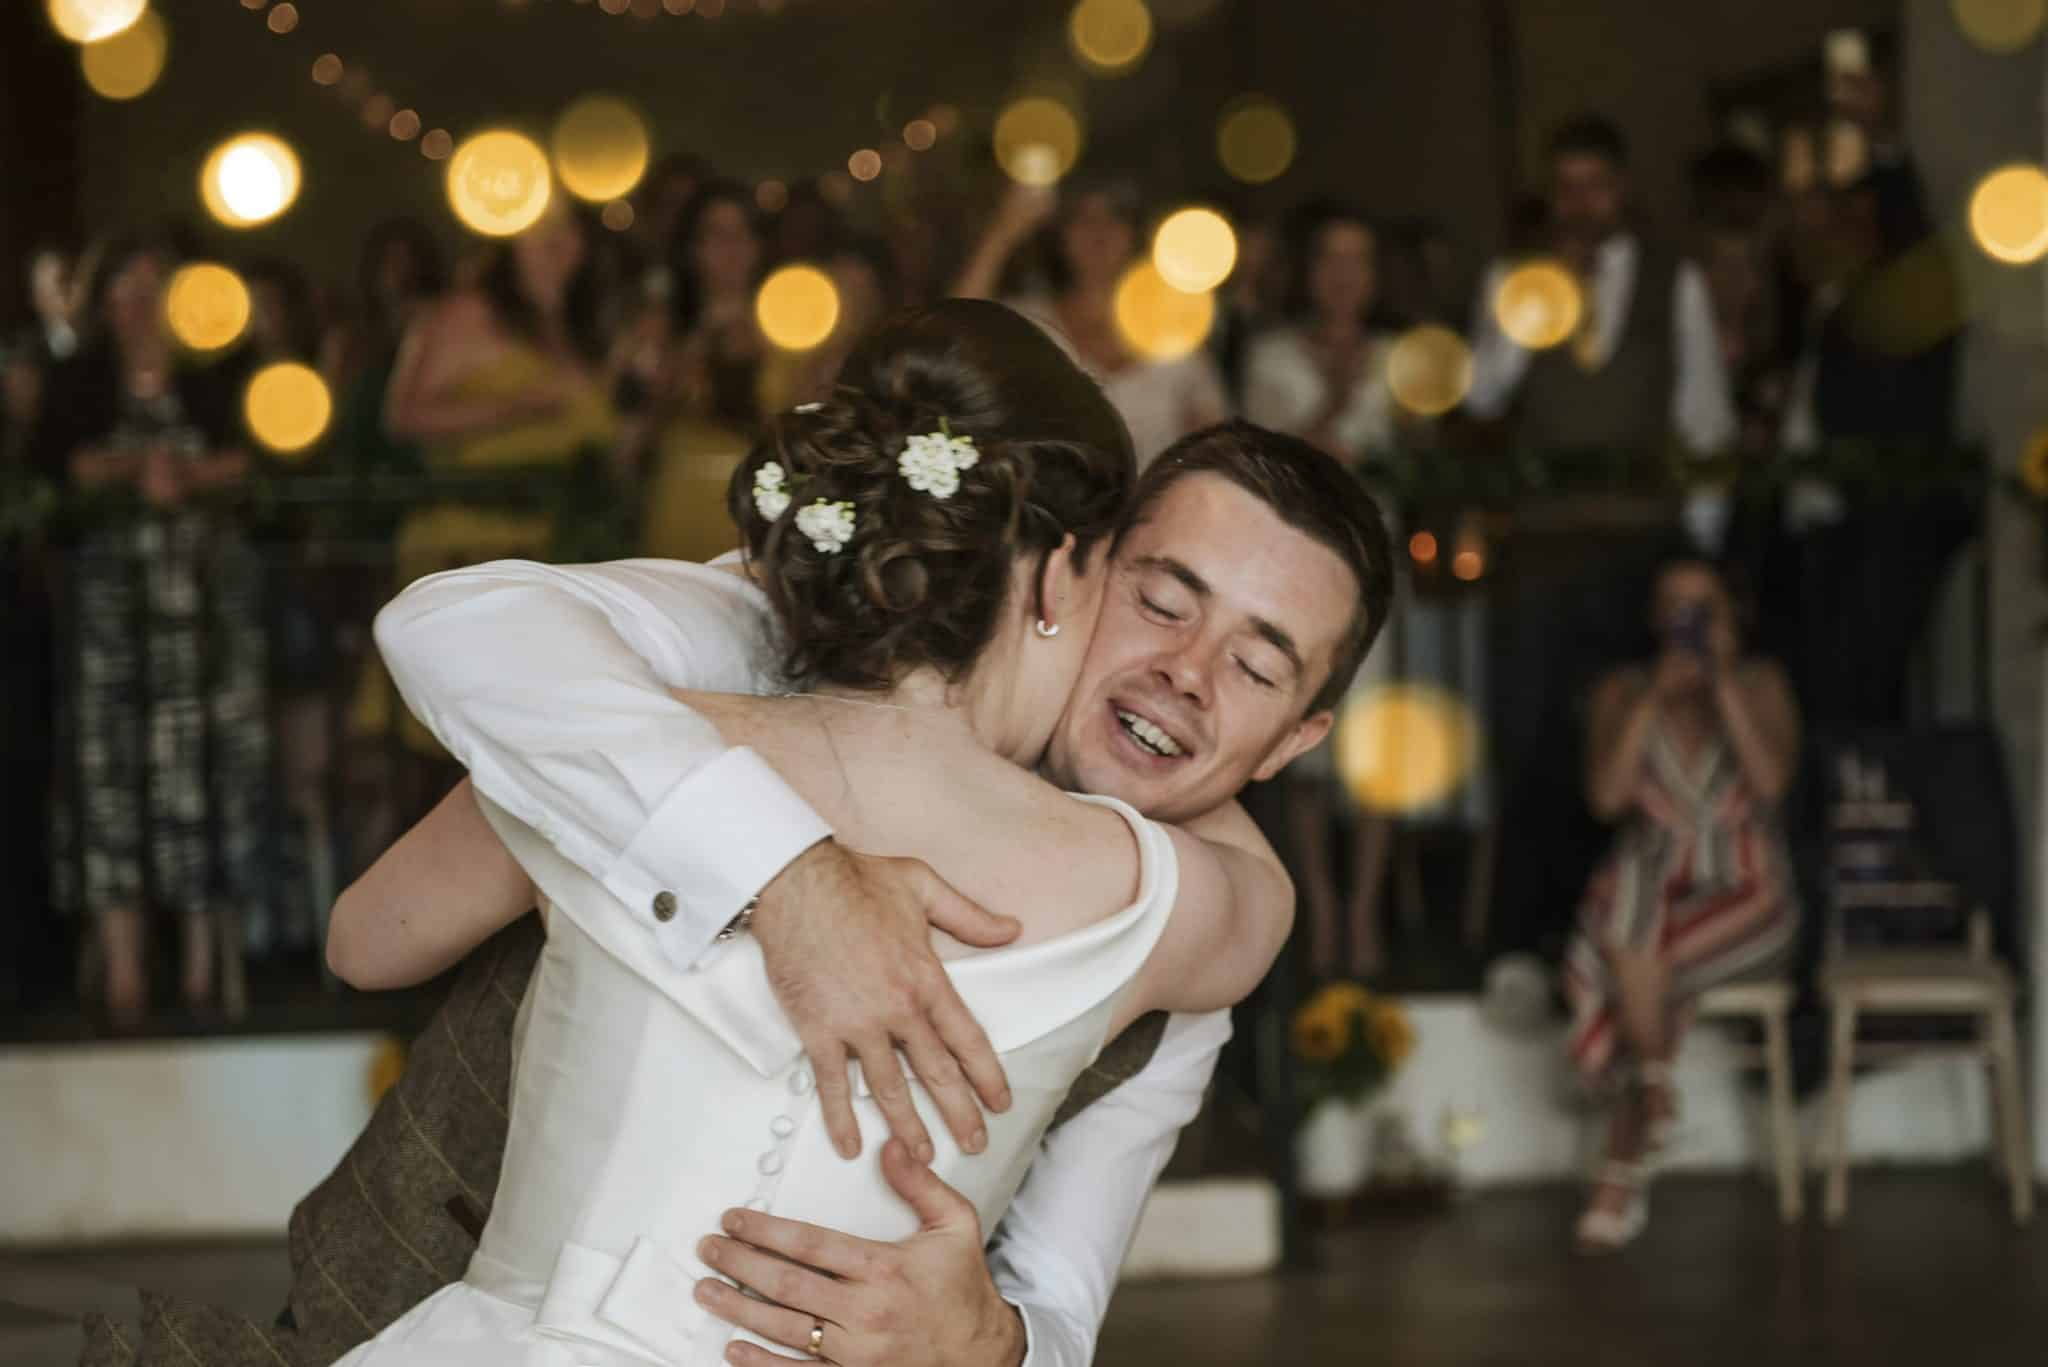 Bride & Groom hug on dance floor